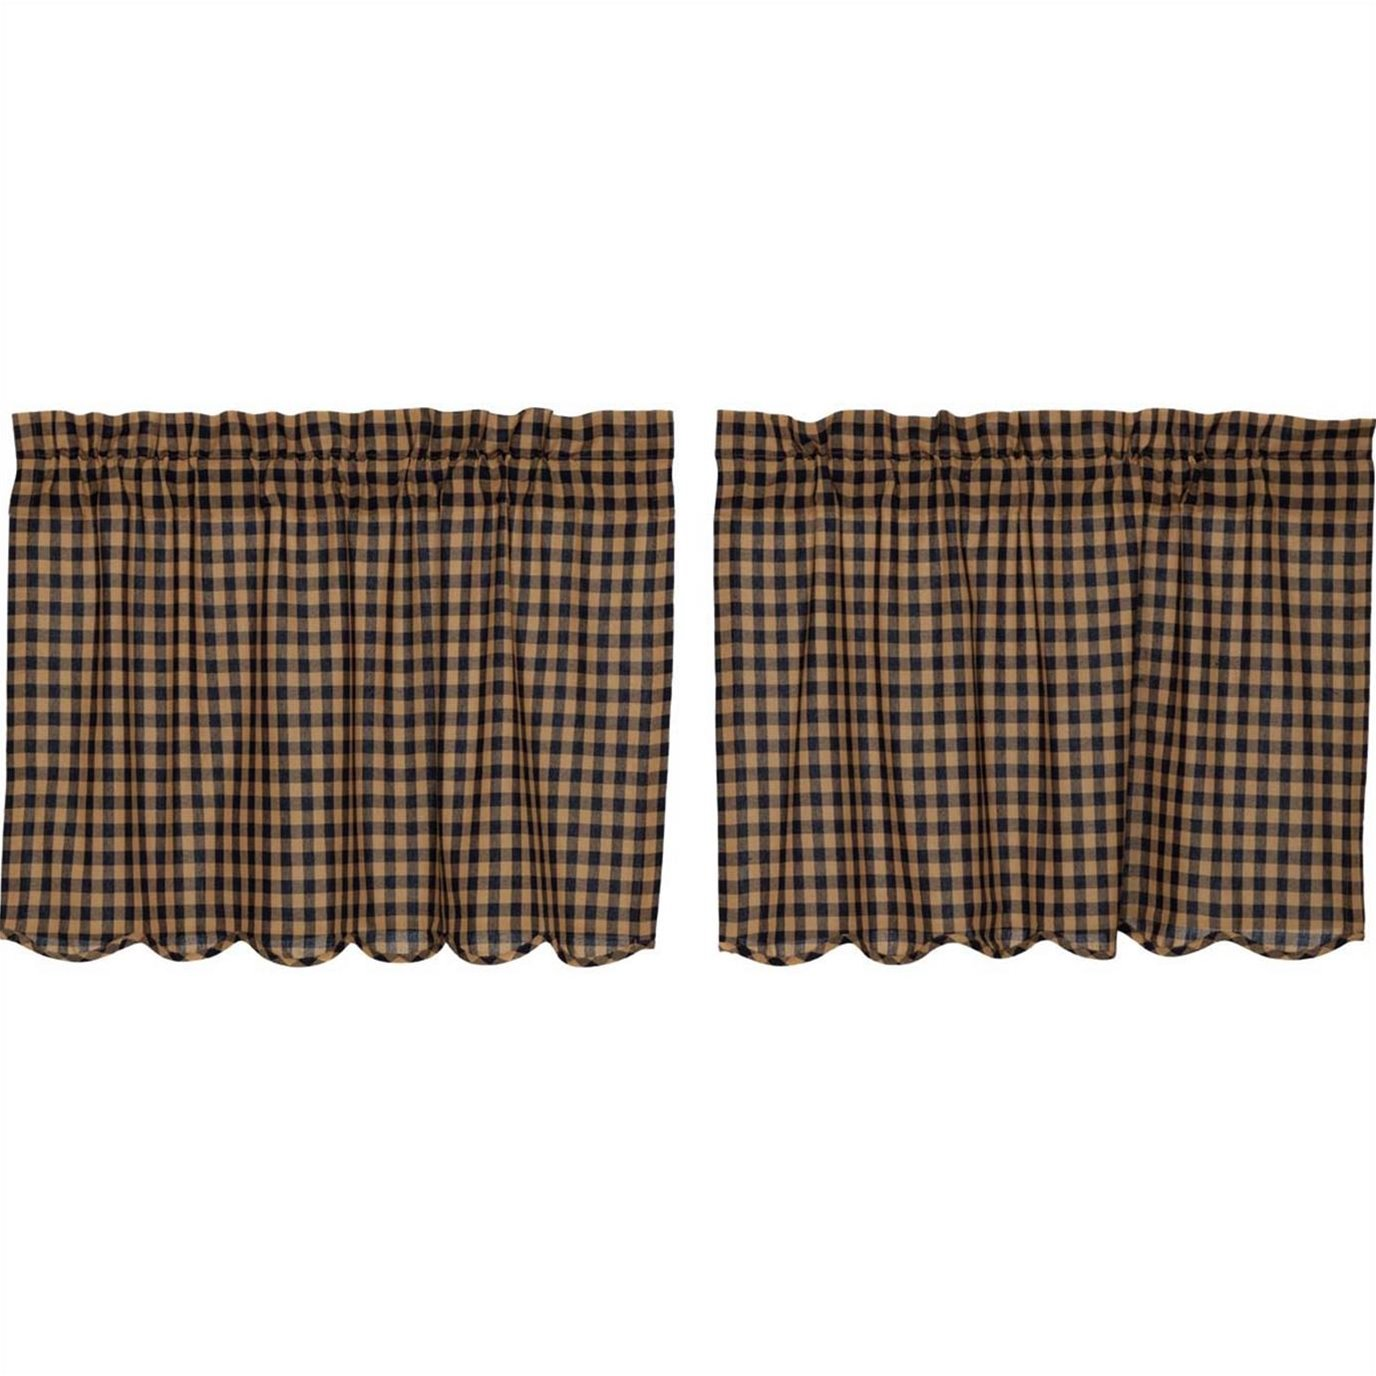 Navy Check Scalloped Tier Set of 2 24x36